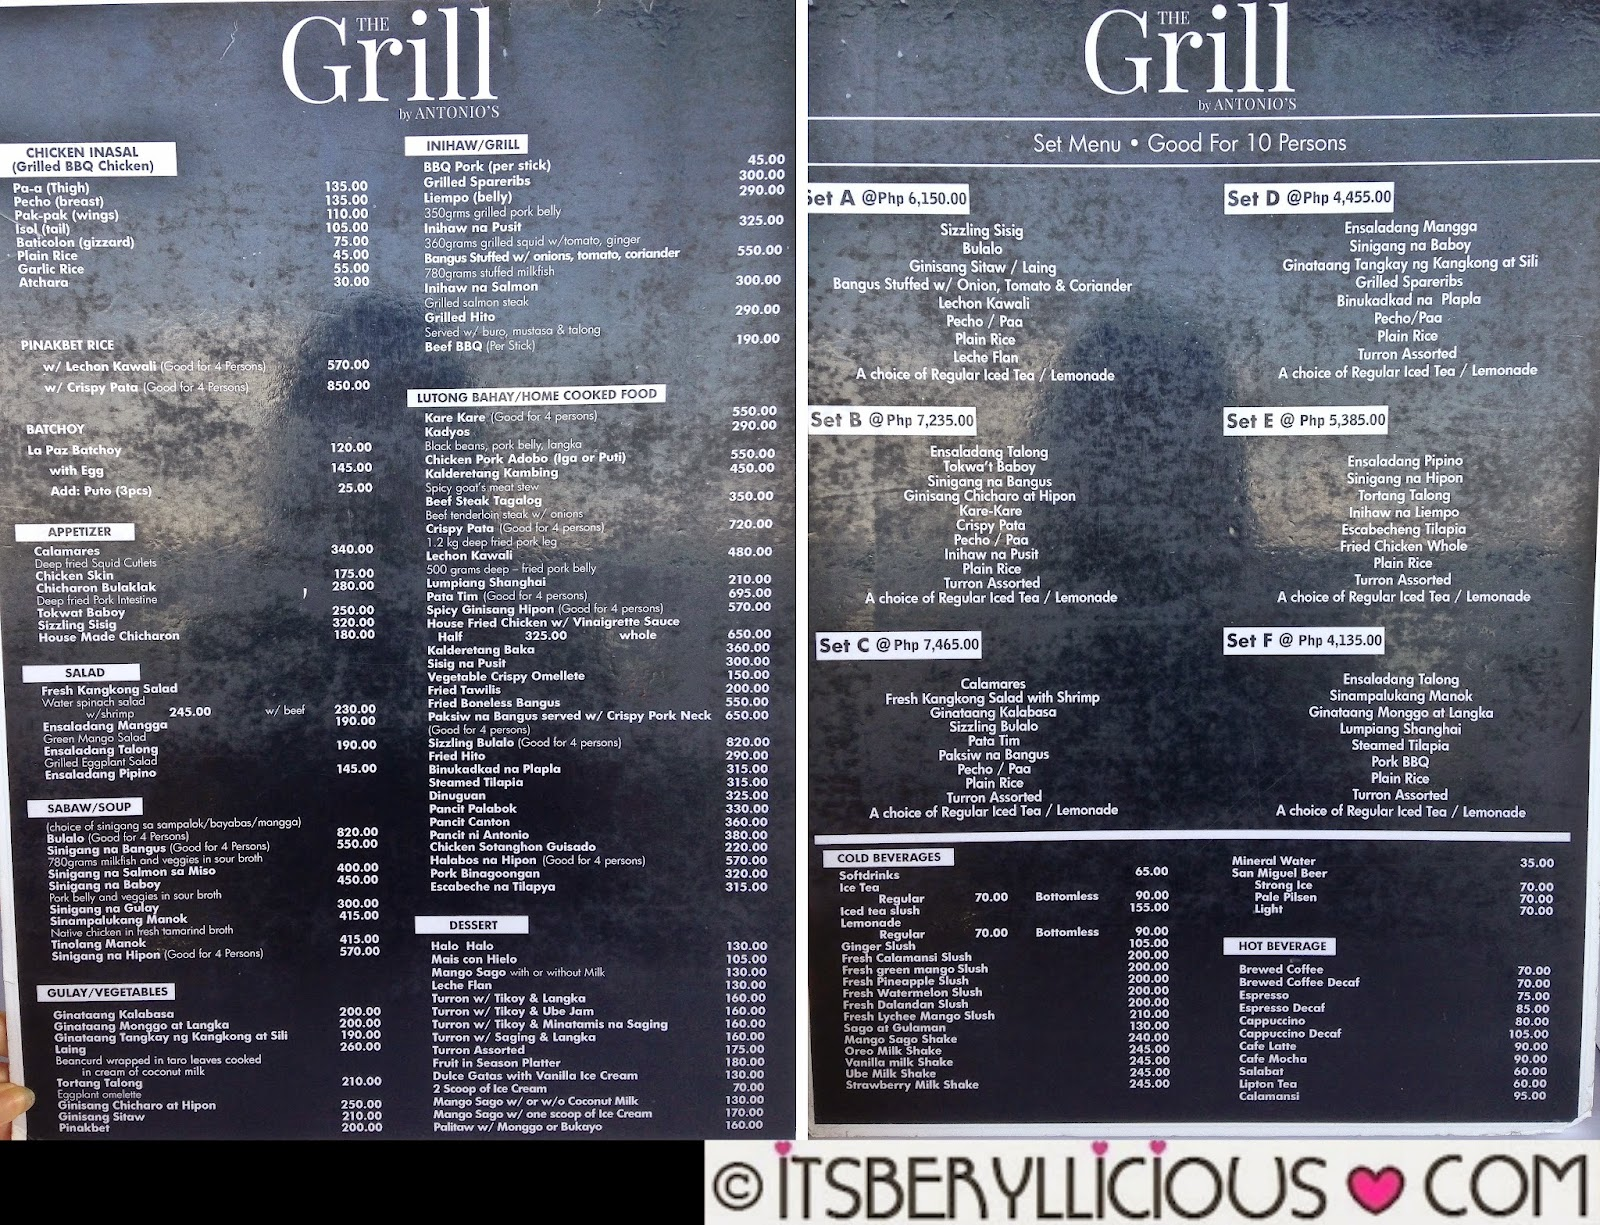 The Grill By Antonios Filipino Cuisine Overlooking Taal